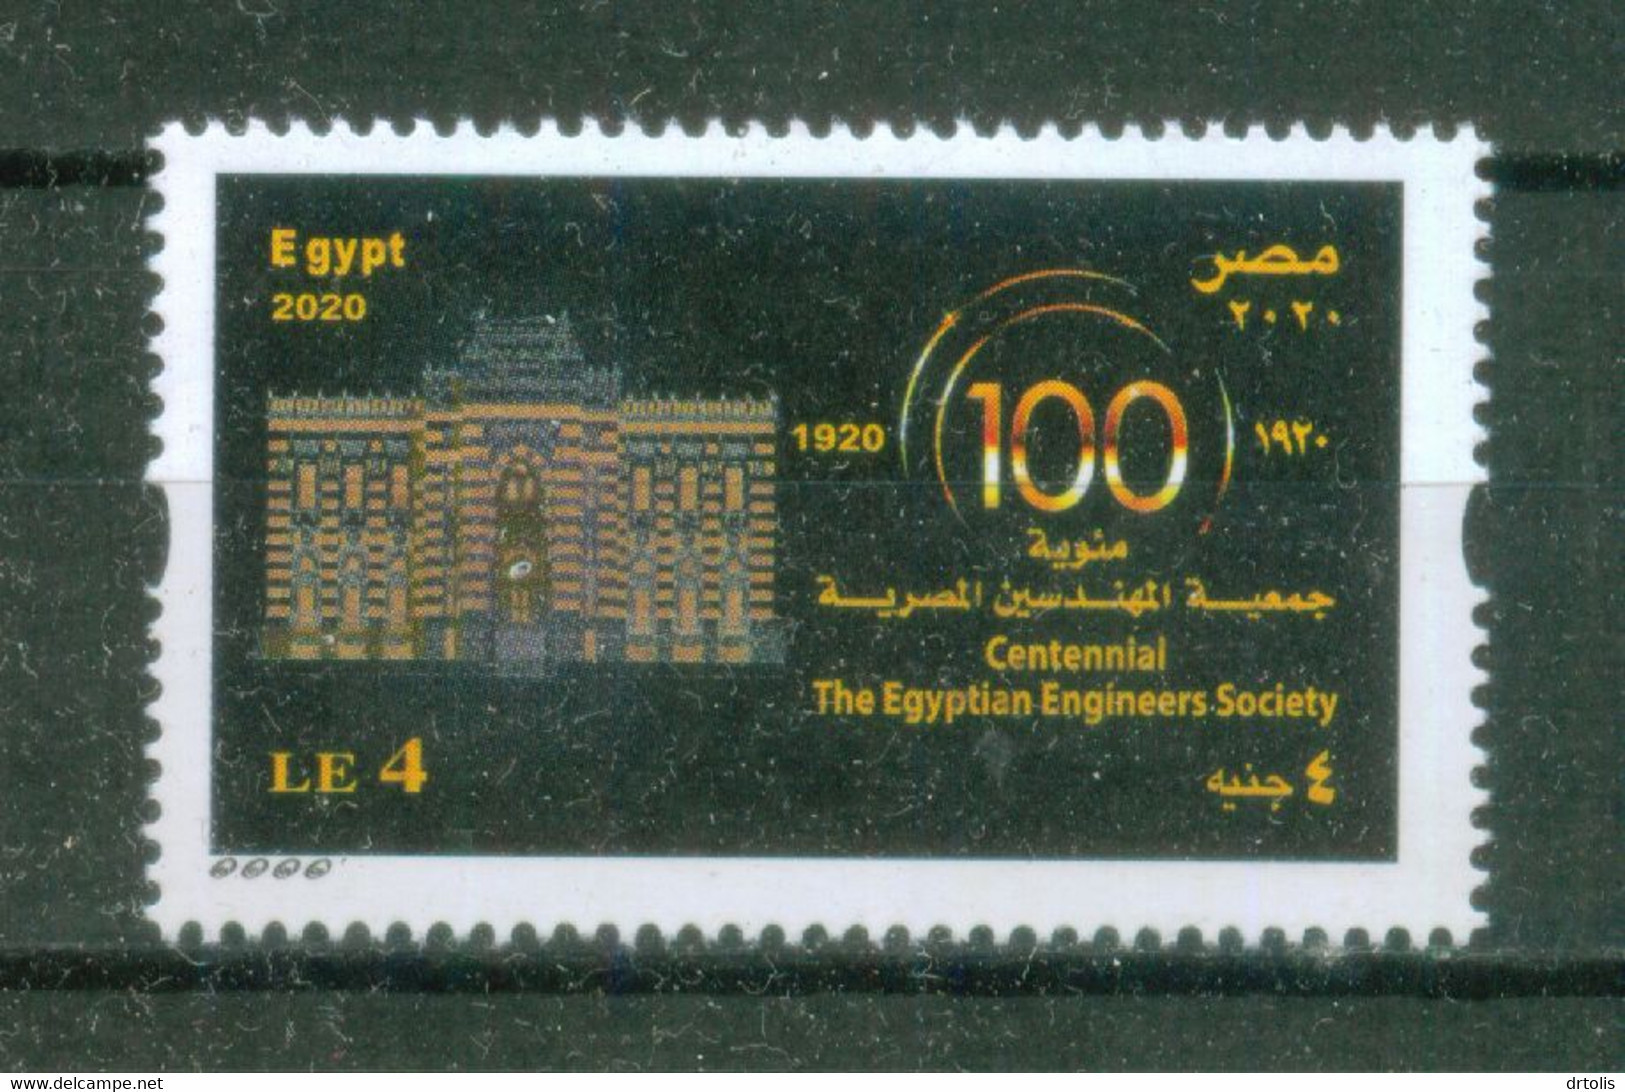 EGYPT / 2020 / THE EGYPTIAN ENGINEERS SOCIETY ; 100 YEARS / FACULTY OF ENGINEERS / CAIRO UNIVERSITY / ENGINEERS KHAN - Nuovi